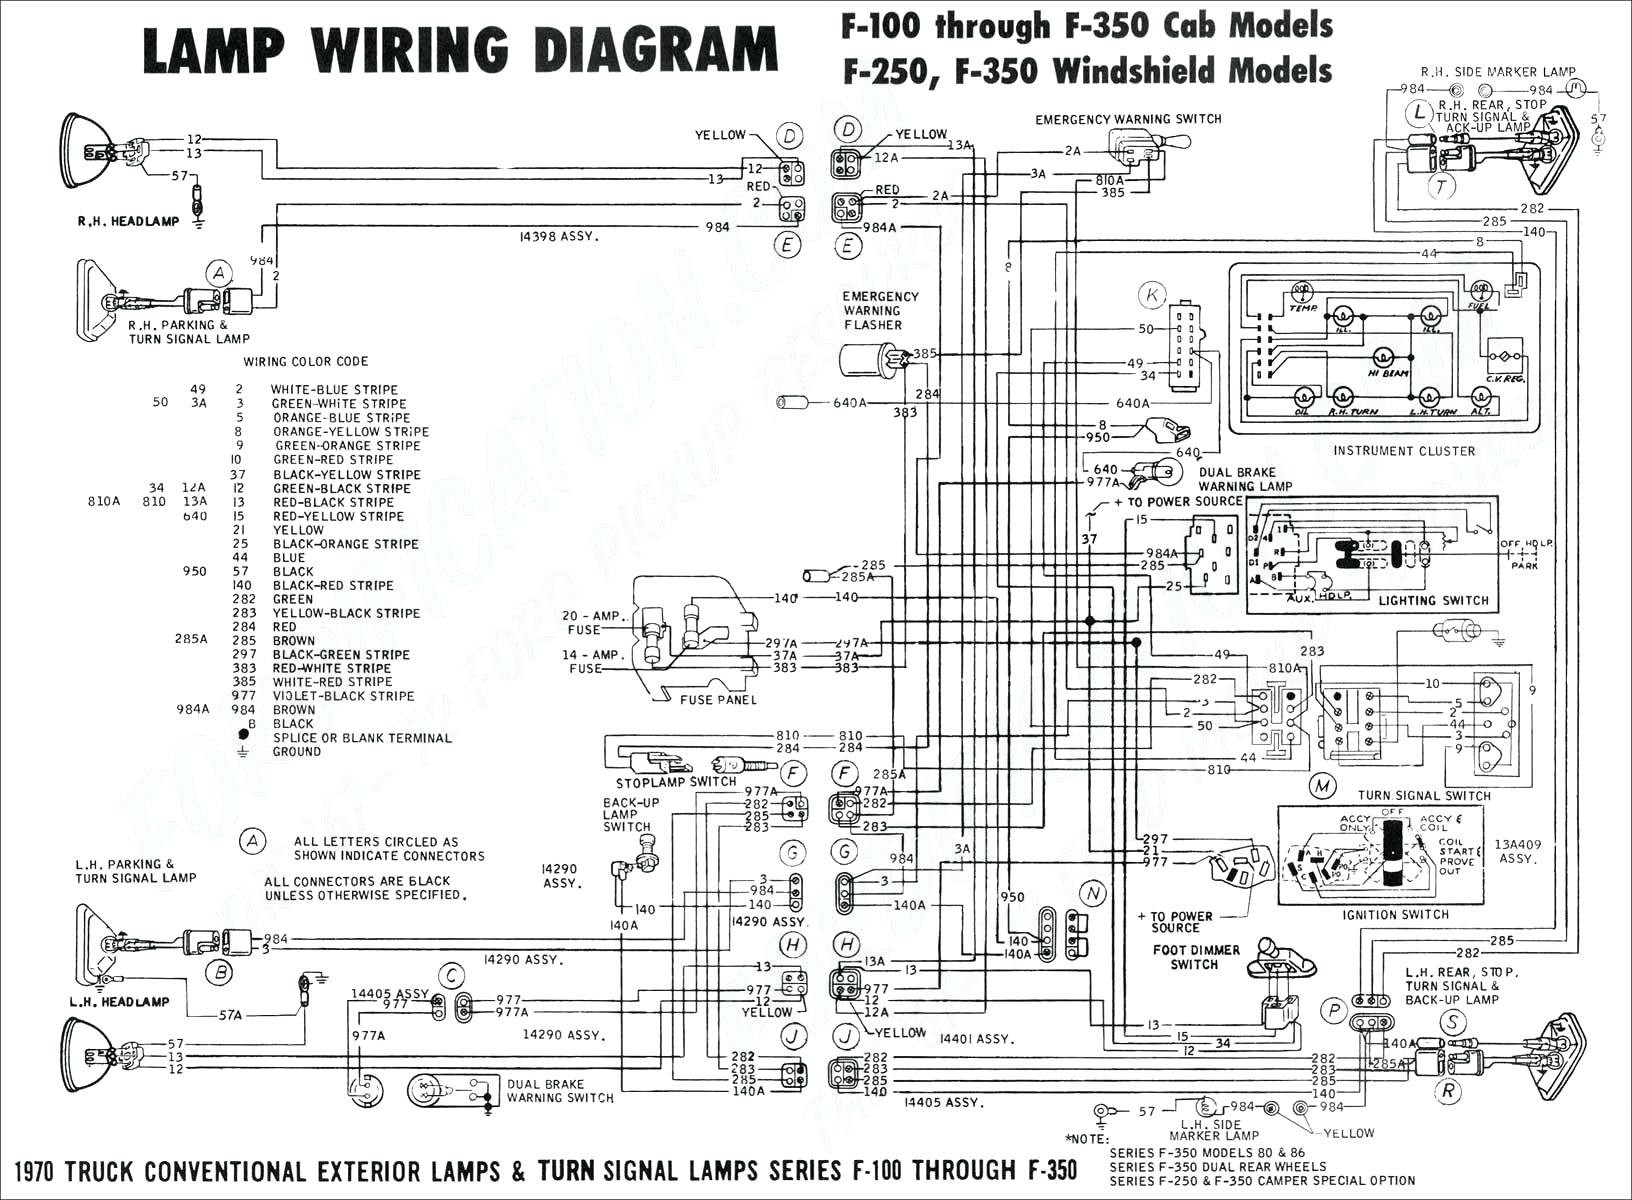 Mack Starter Wiring Free Diagram For You Ford Au V8 2009 Diagrams Library Rh 60 Bergwacht Schliersee De Chevy Gm